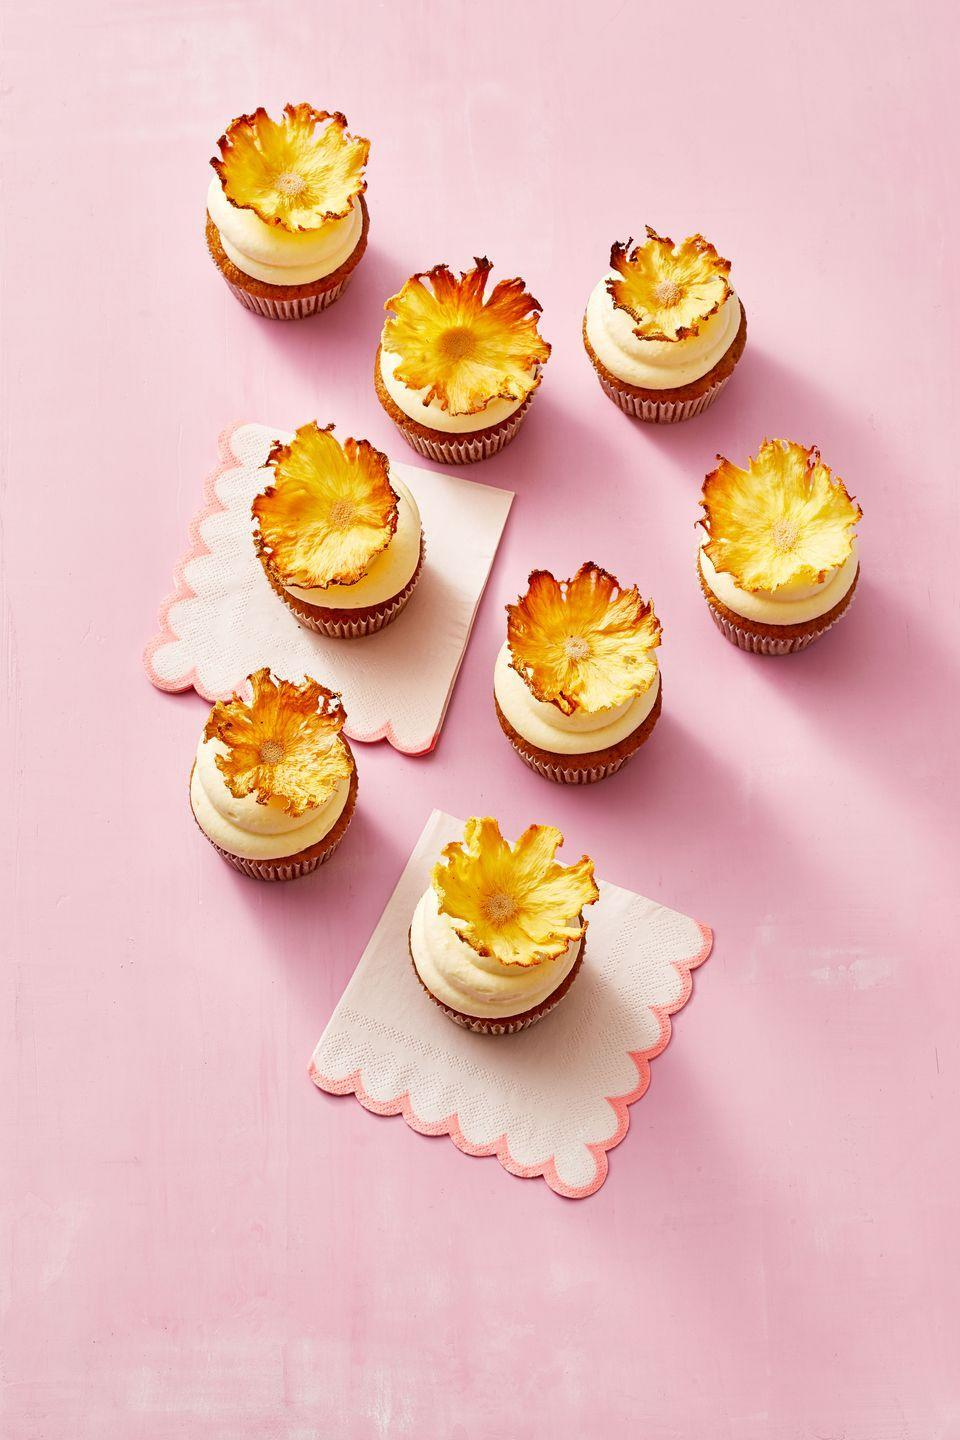 """<p>Carrot, ginger and pineapple cupcakes are perfect for the season—top them with gummy googly eyes instead of dried pineapple for extra spook.</p><p><em><a href=""""https://www.goodhousekeeping.com/food-recipes/a35537898/carrot-pineapple-cupcakes-recipe/"""" rel=""""nofollow noopener"""" target=""""_blank"""" data-ylk=""""slk:Get the recipe for Carrot-Pineapple Cupcakes »"""" class=""""link rapid-noclick-resp"""">Get the recipe for Carrot-Pineapple Cupcakes »</a></em></p>"""